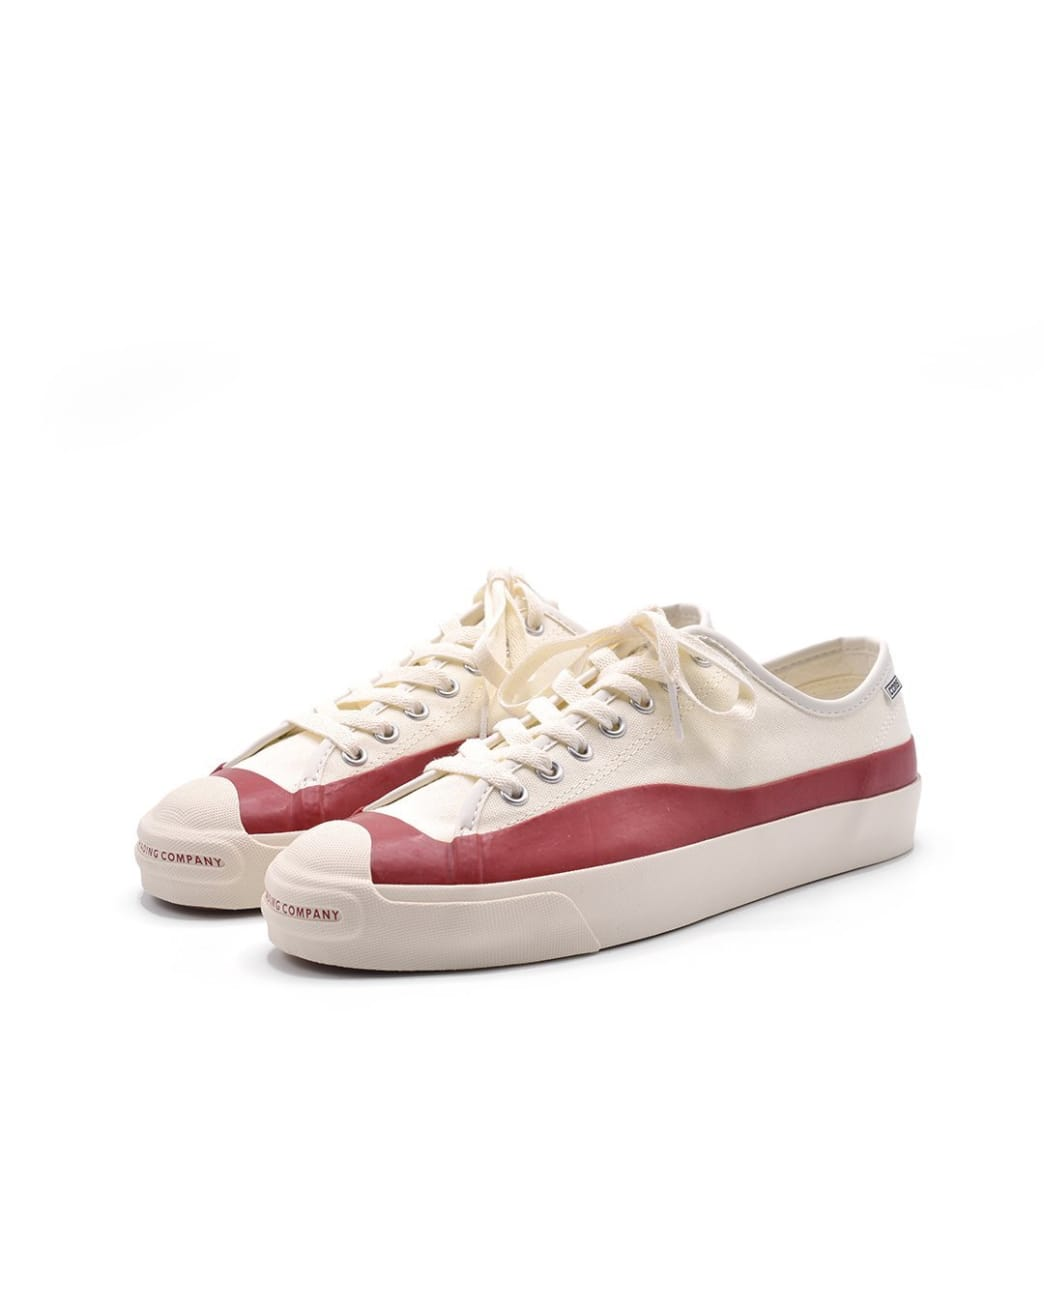 Converse Pop Trading Jack Purcell Pro Ox - Egret / Red Dahlia | Shoes by Converse Cons 2